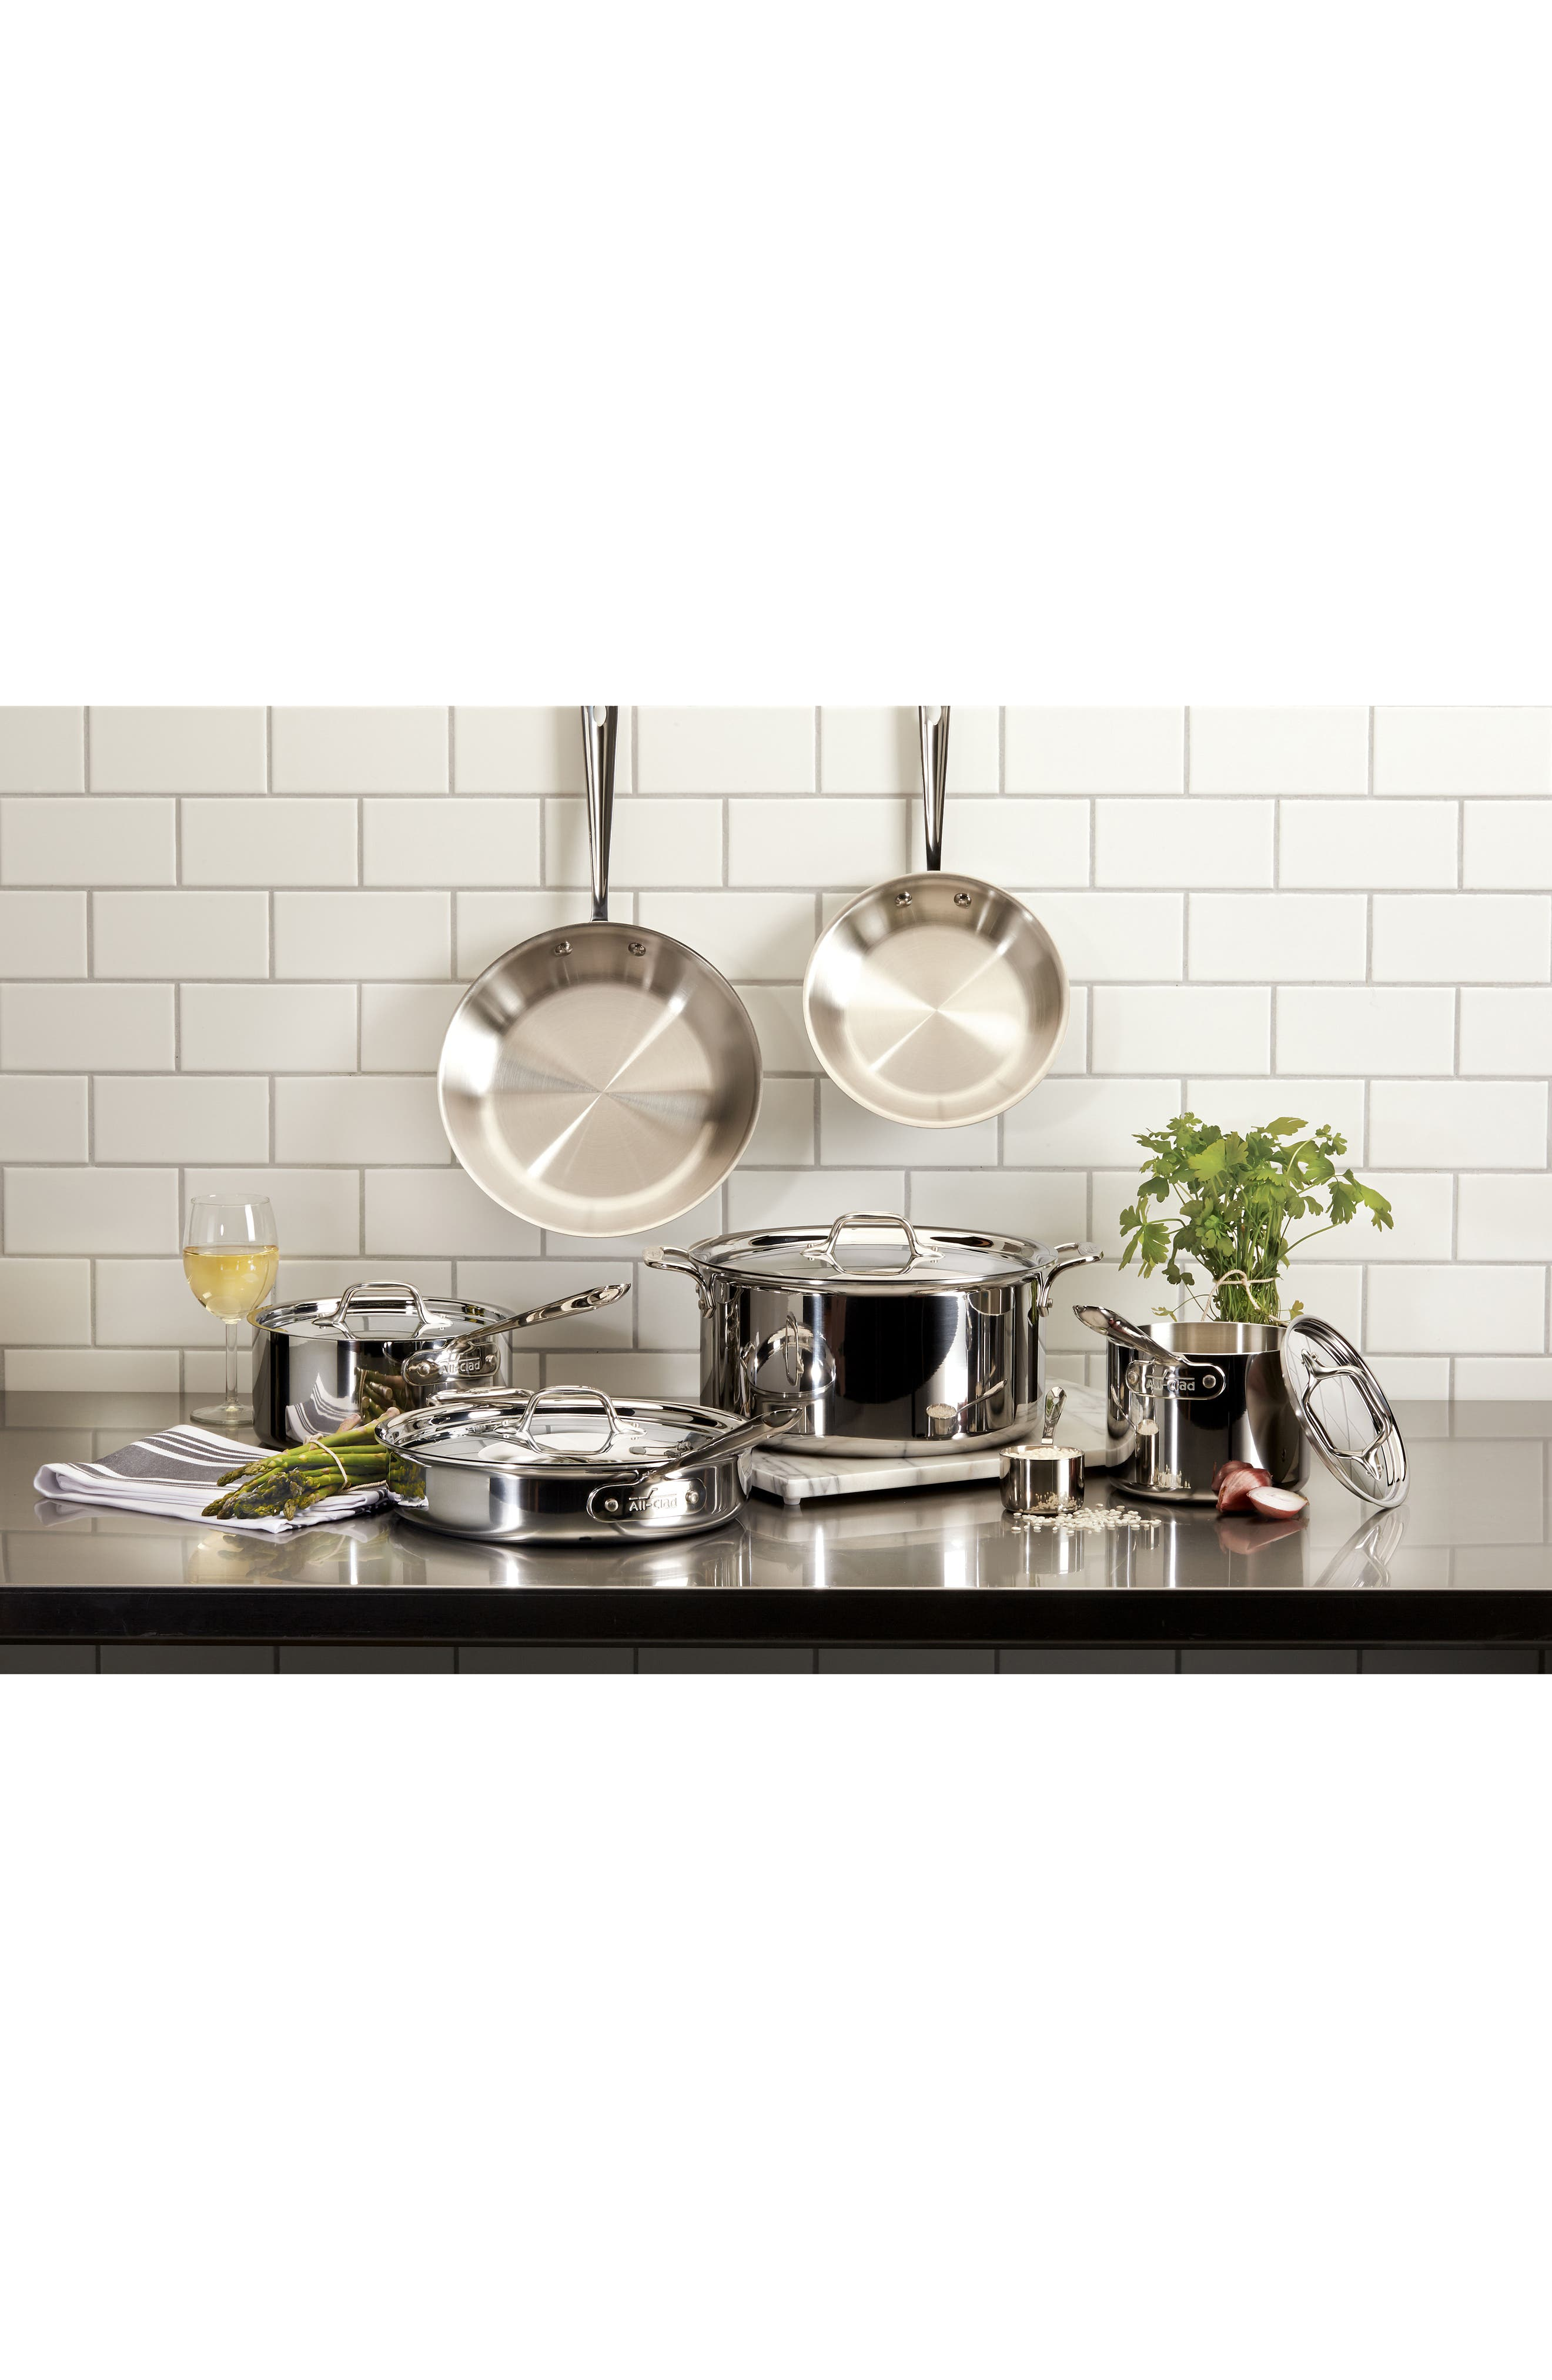 10-Piece Stainless Steel Cookware Set,                             Alternate thumbnail 2, color,                             STAINLESS